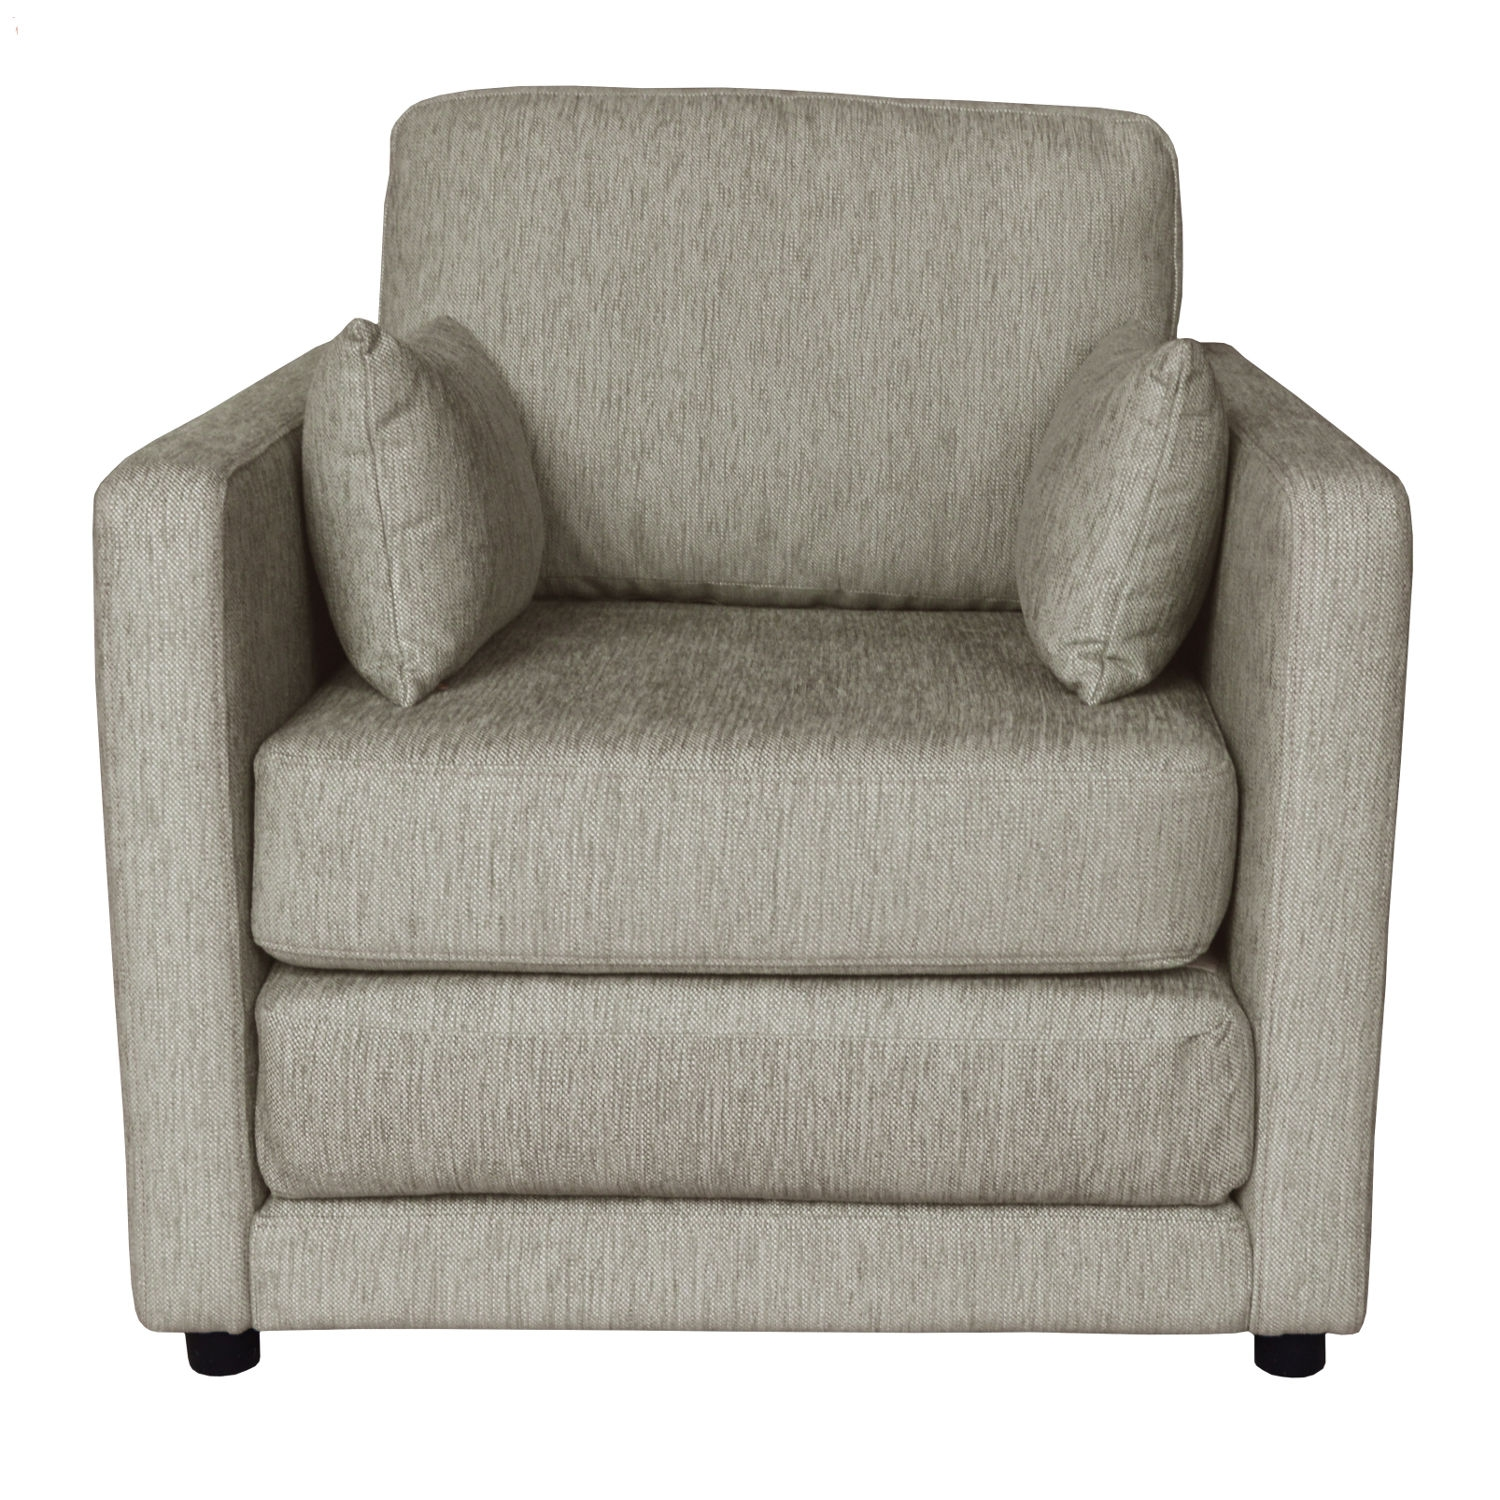 Sofa And Chair For Single Seat Sofa Chairs (View 4 of 15)